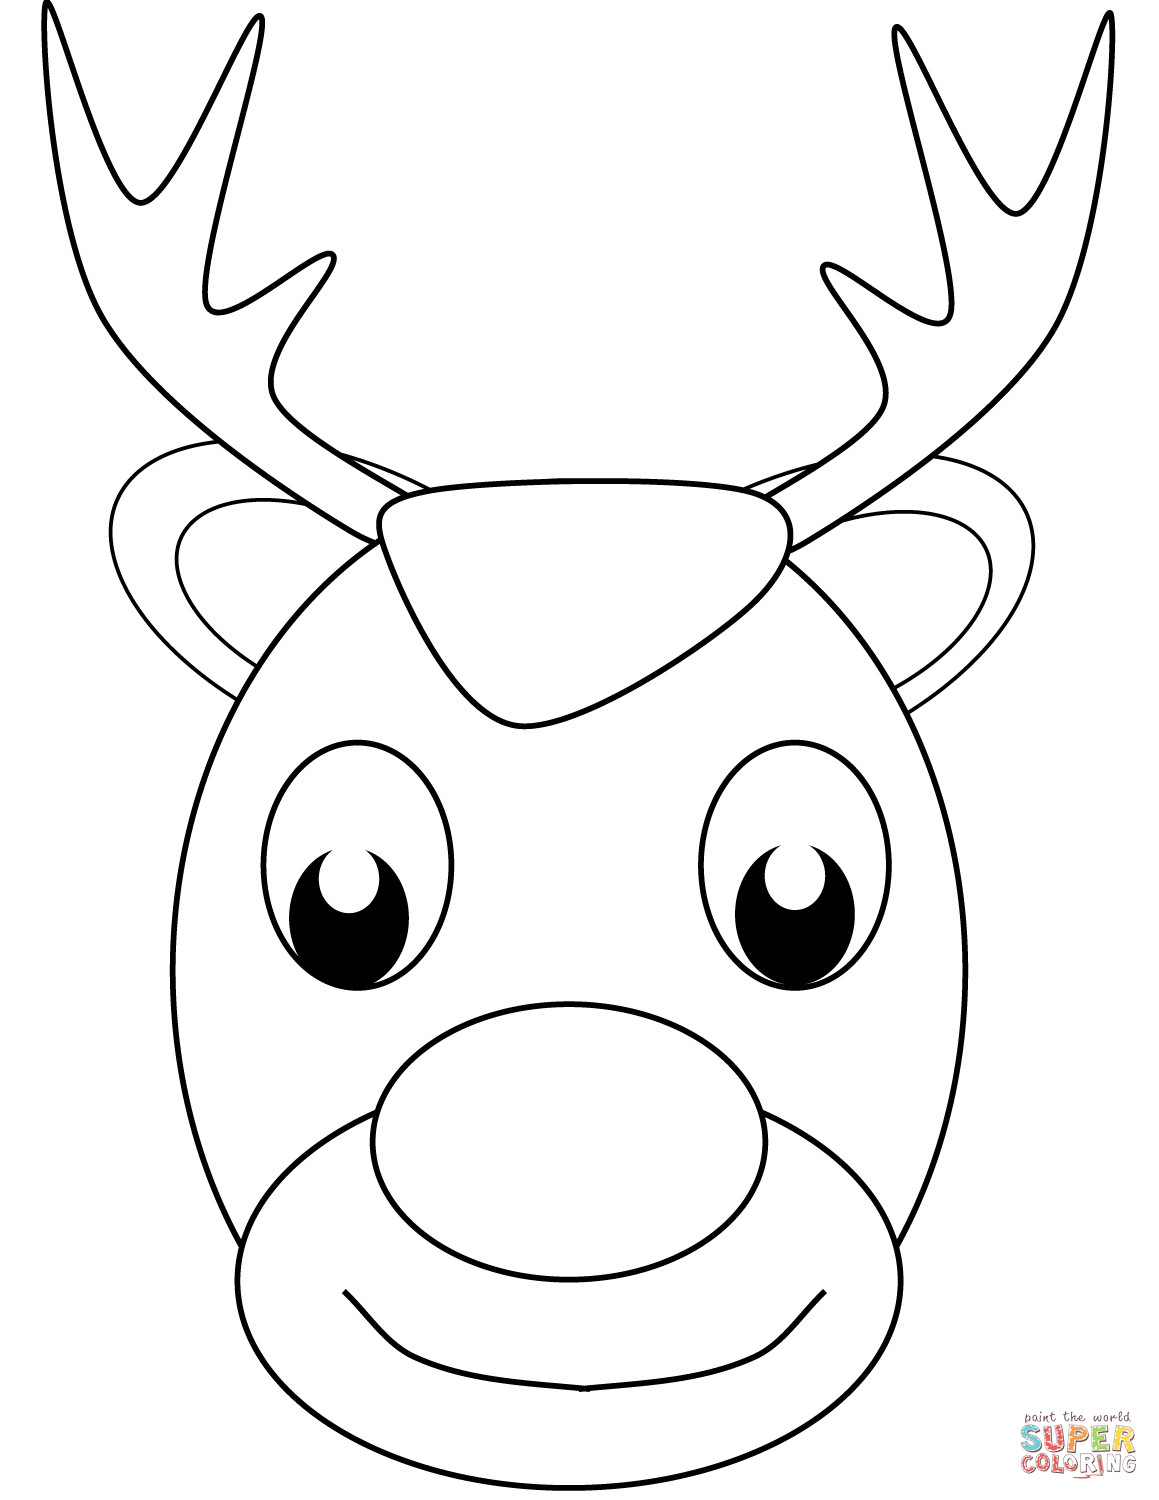 Christmas Reindeer Coloring Pages Printable With Part 135 Make Your World More Colorful